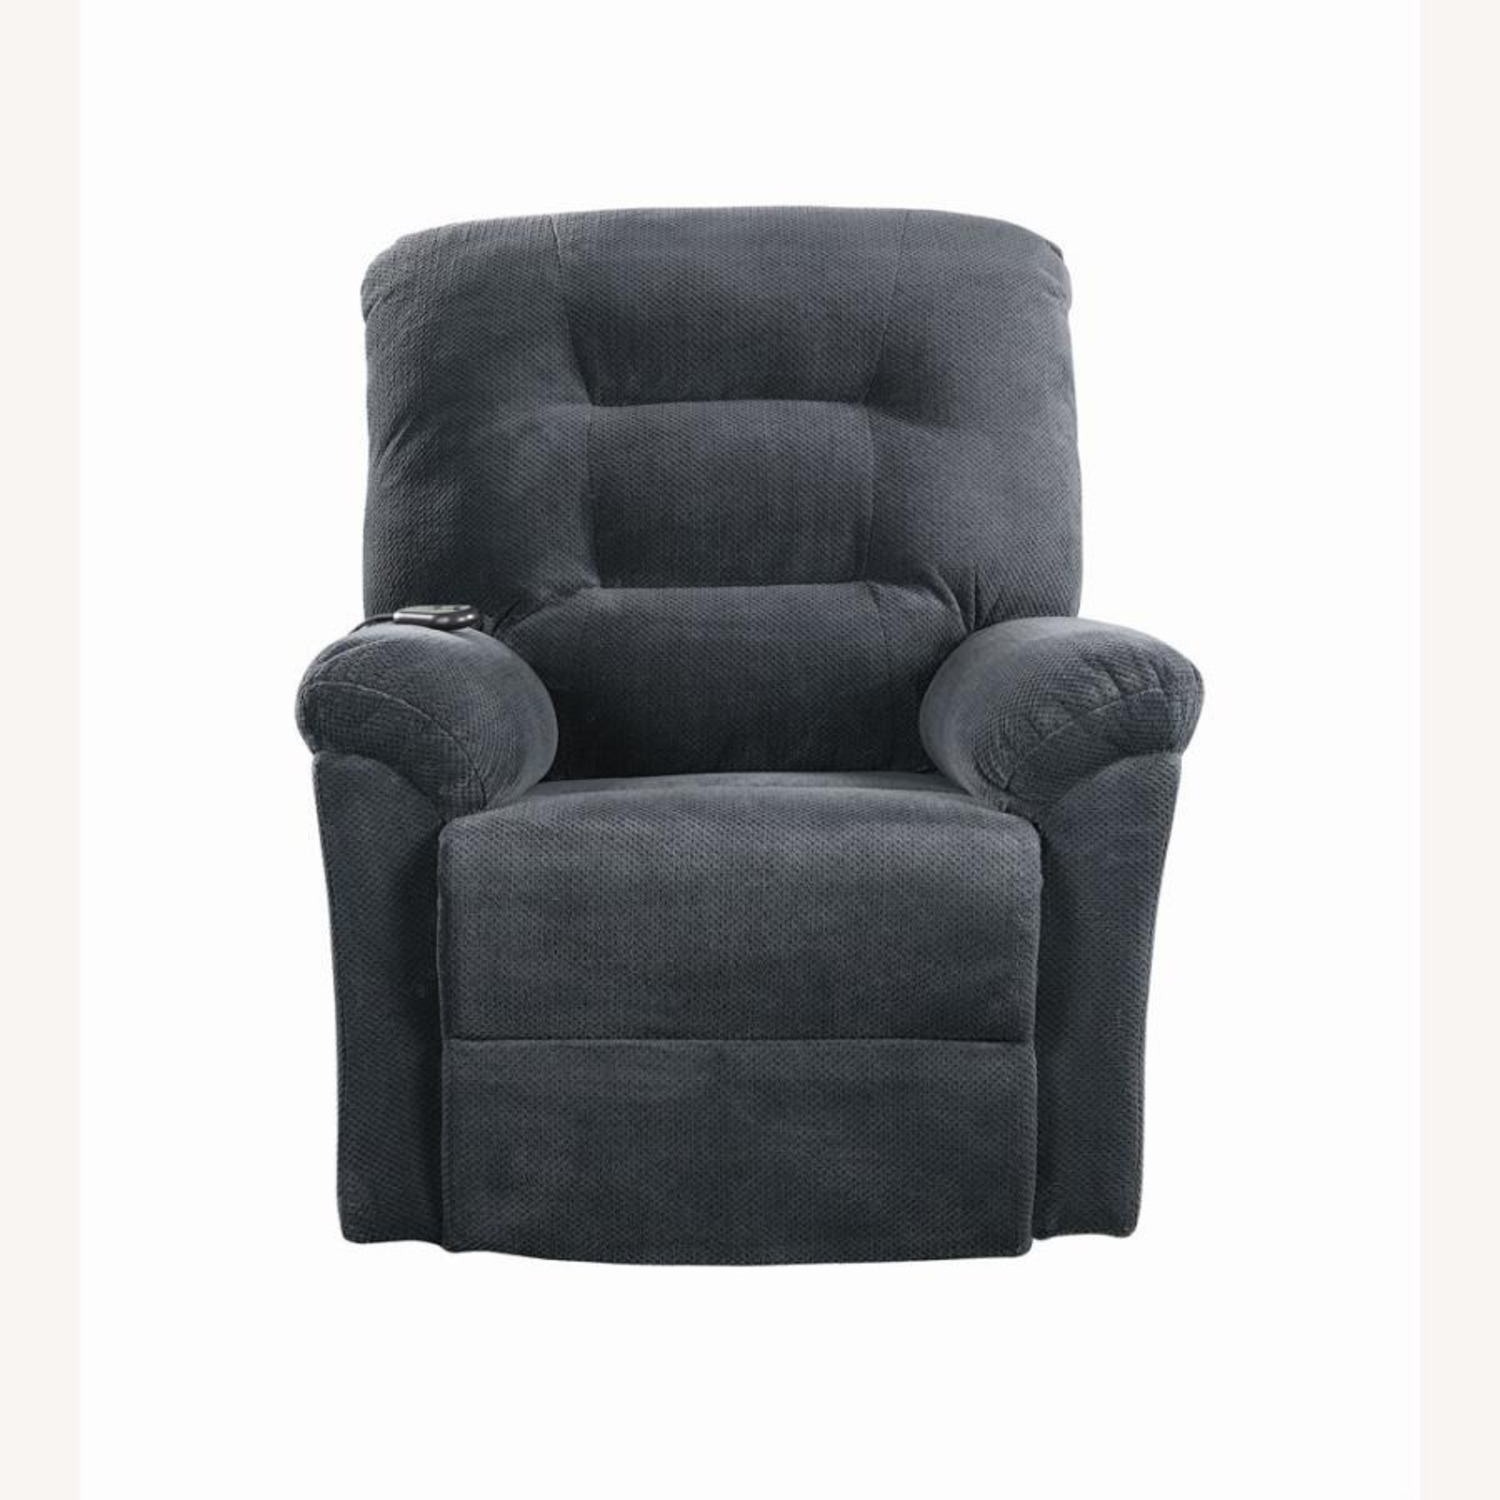 Power Lift Recliner In Charcoal Chenille Fabric - image-3